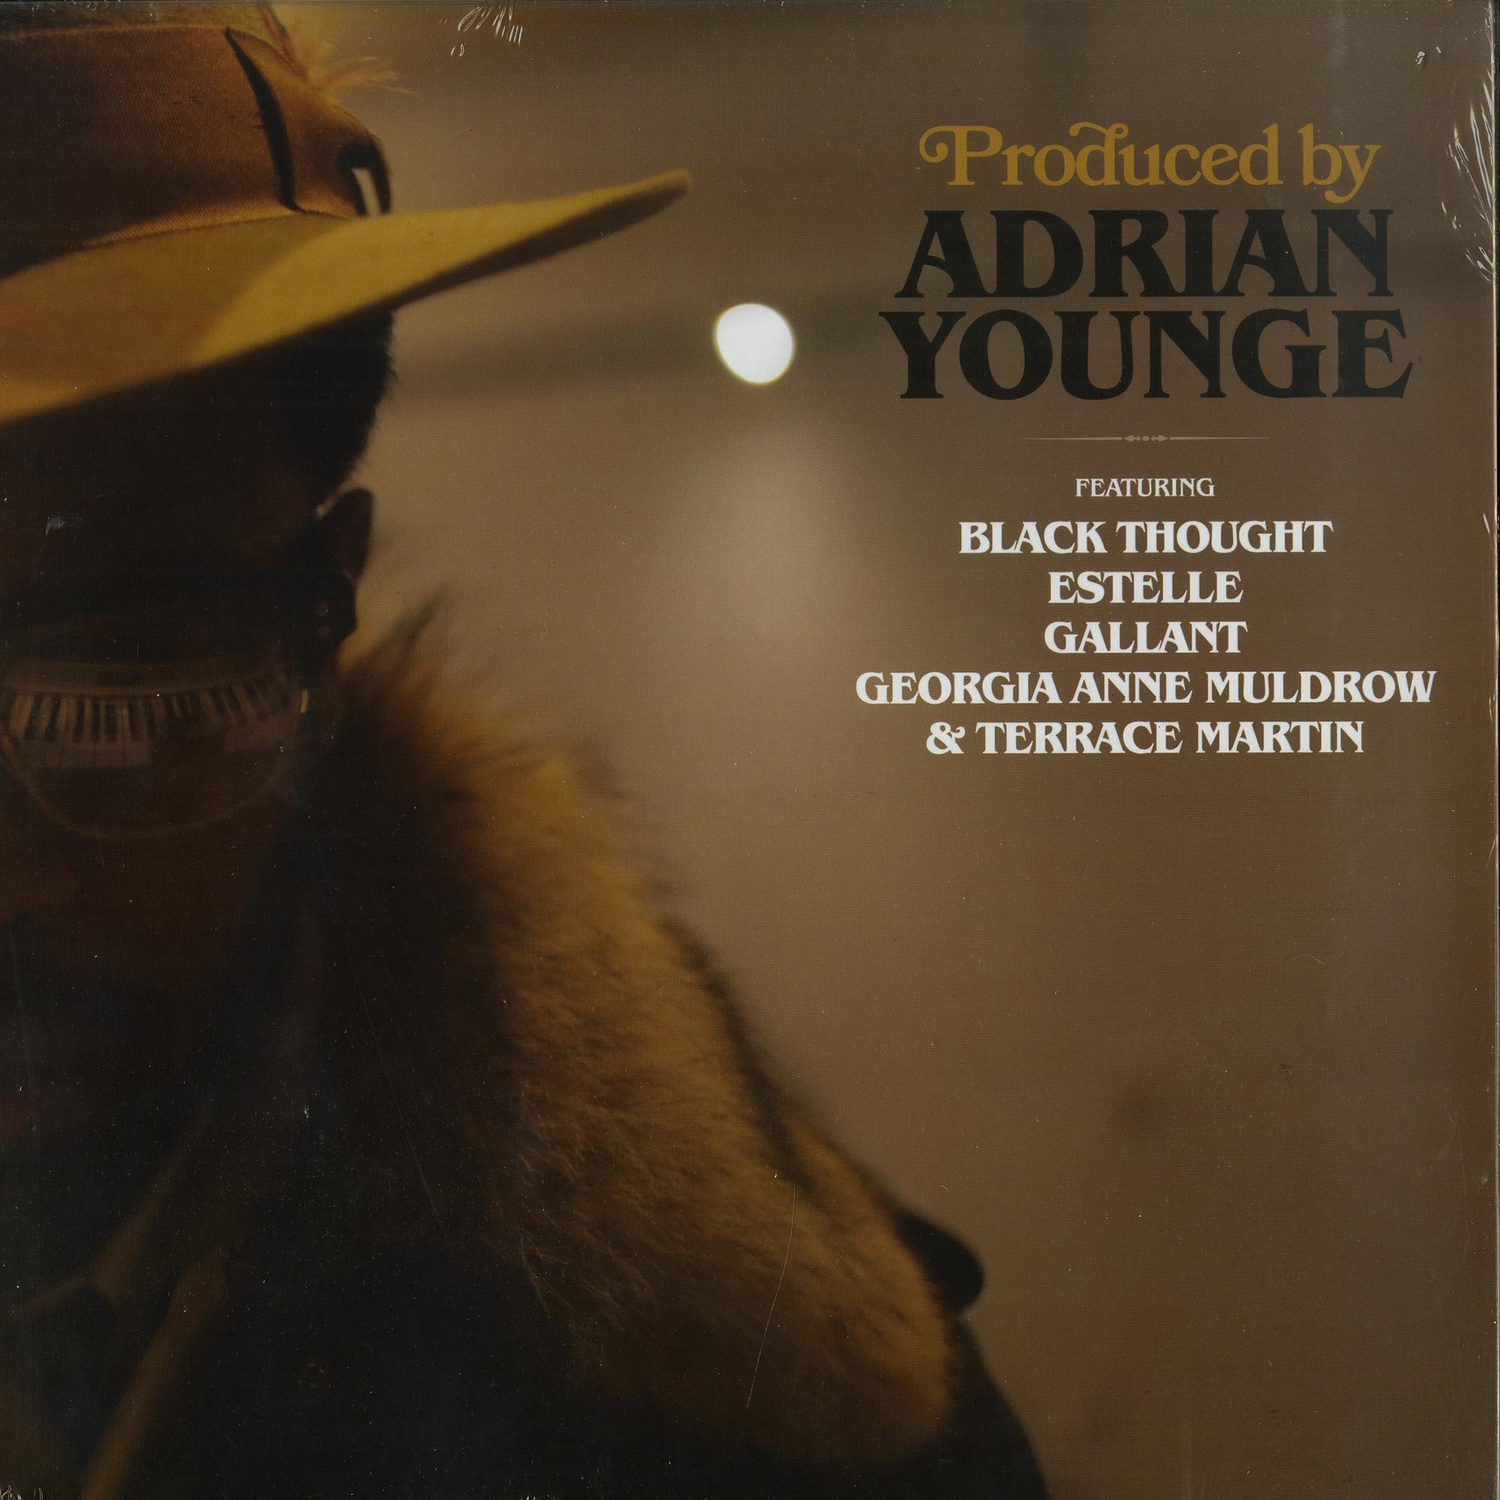 Adrian Younge - PRODUCED BY: ADRIAN YOUNGE